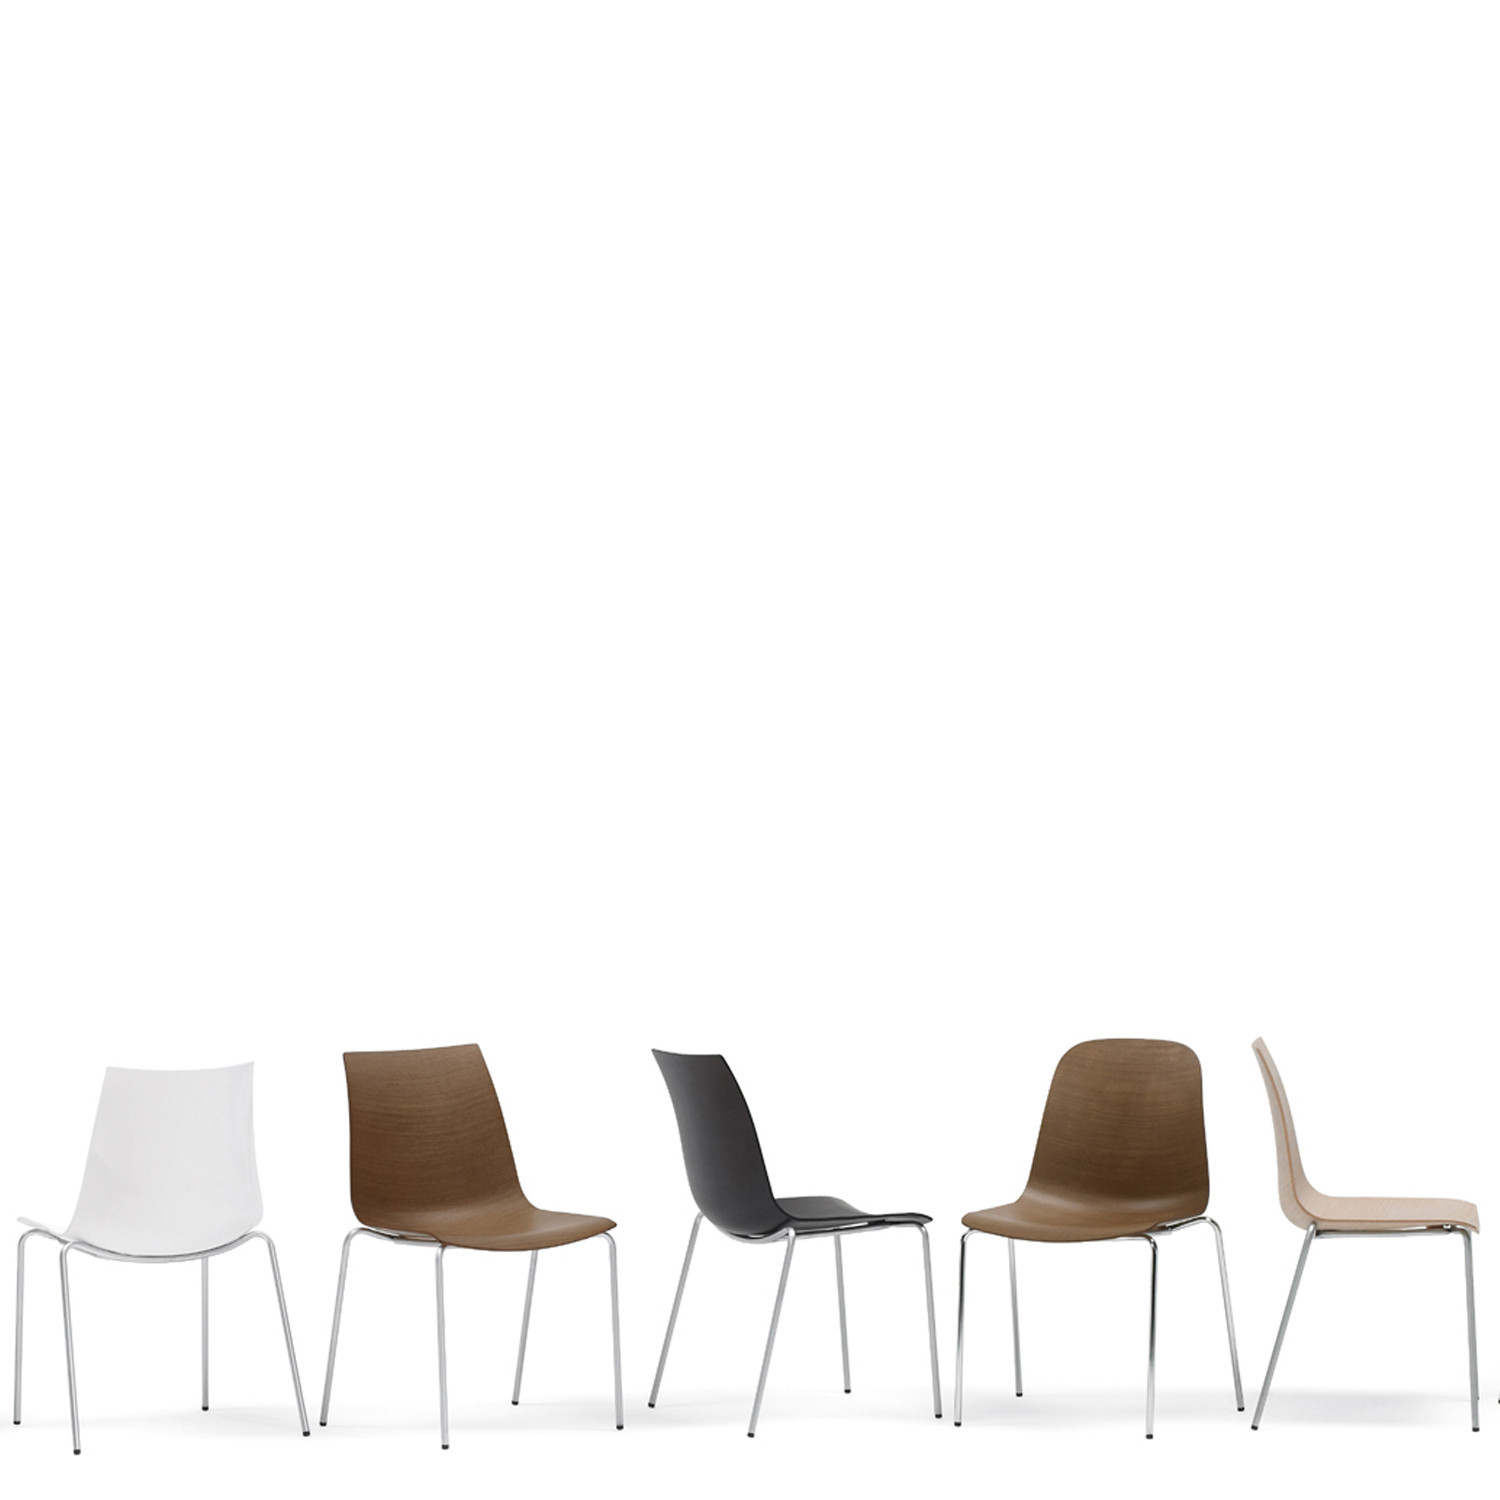 3D Chair Range